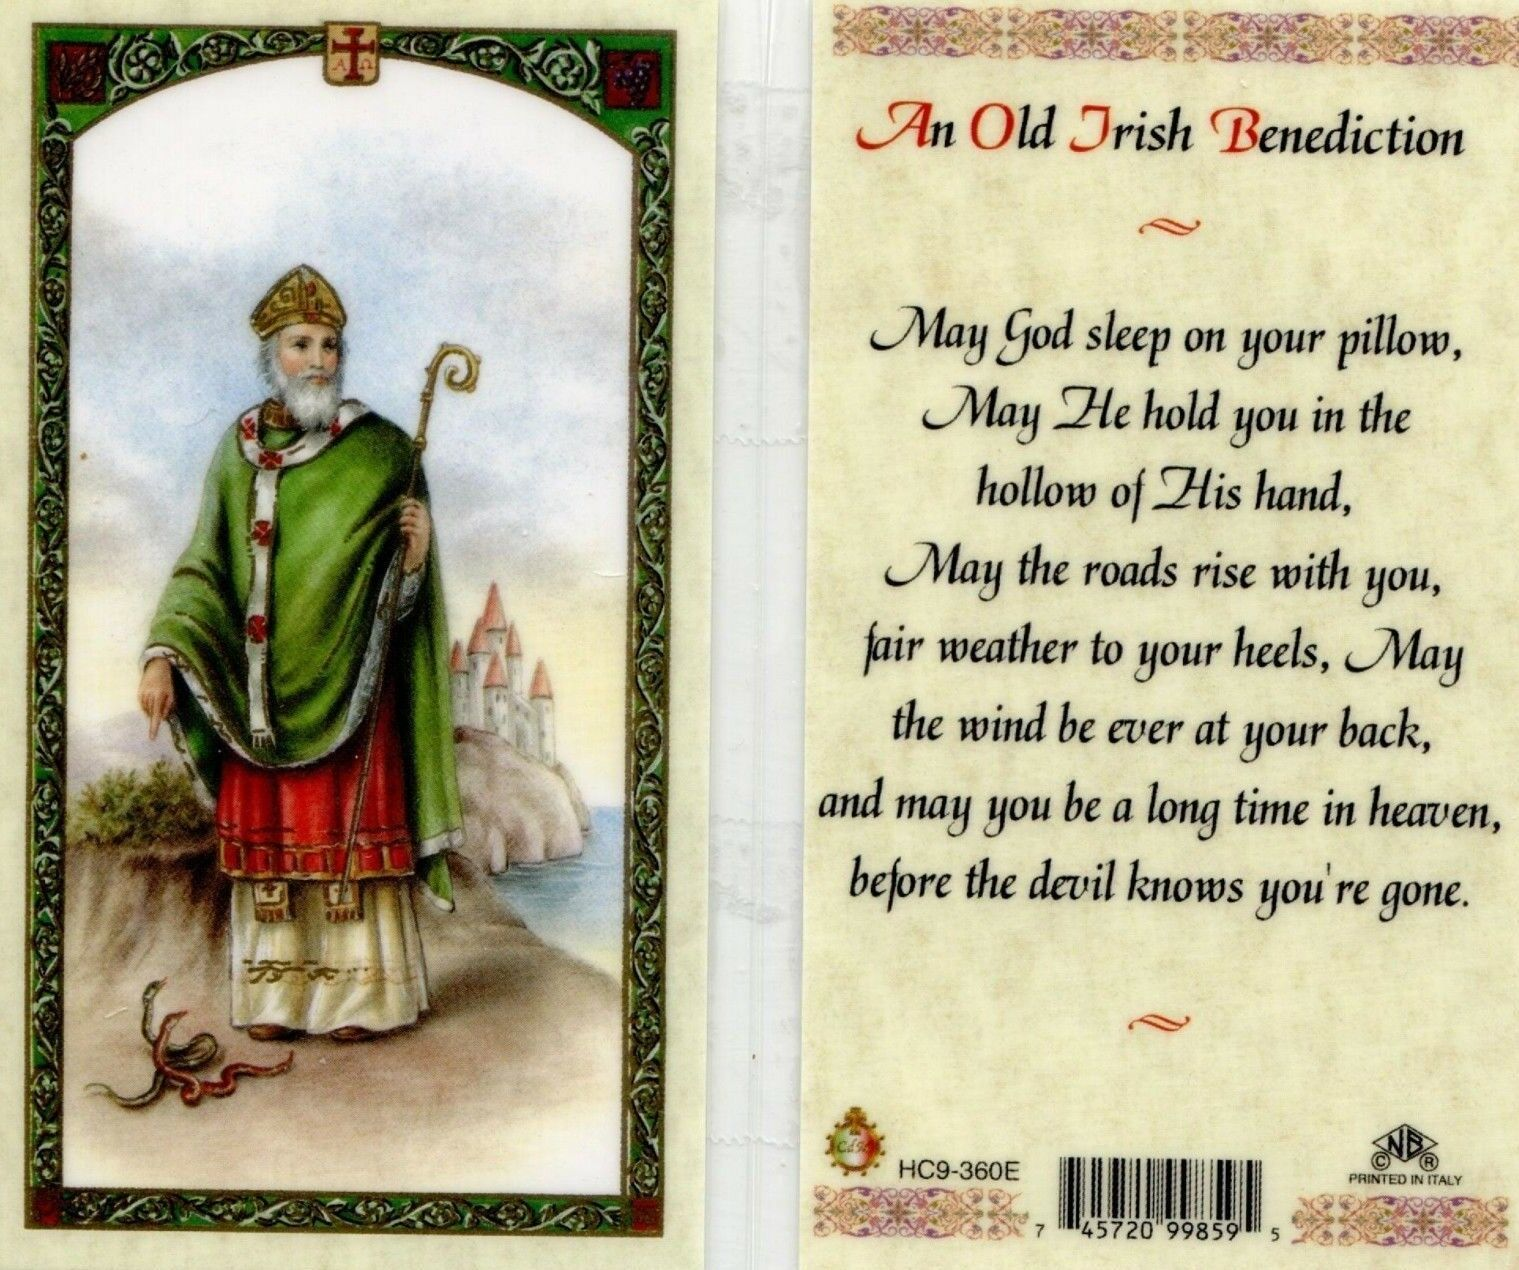 Primary image for An Old Irish Benediction Laminated Prayer Card - Item EB219 - Catholic Laminated